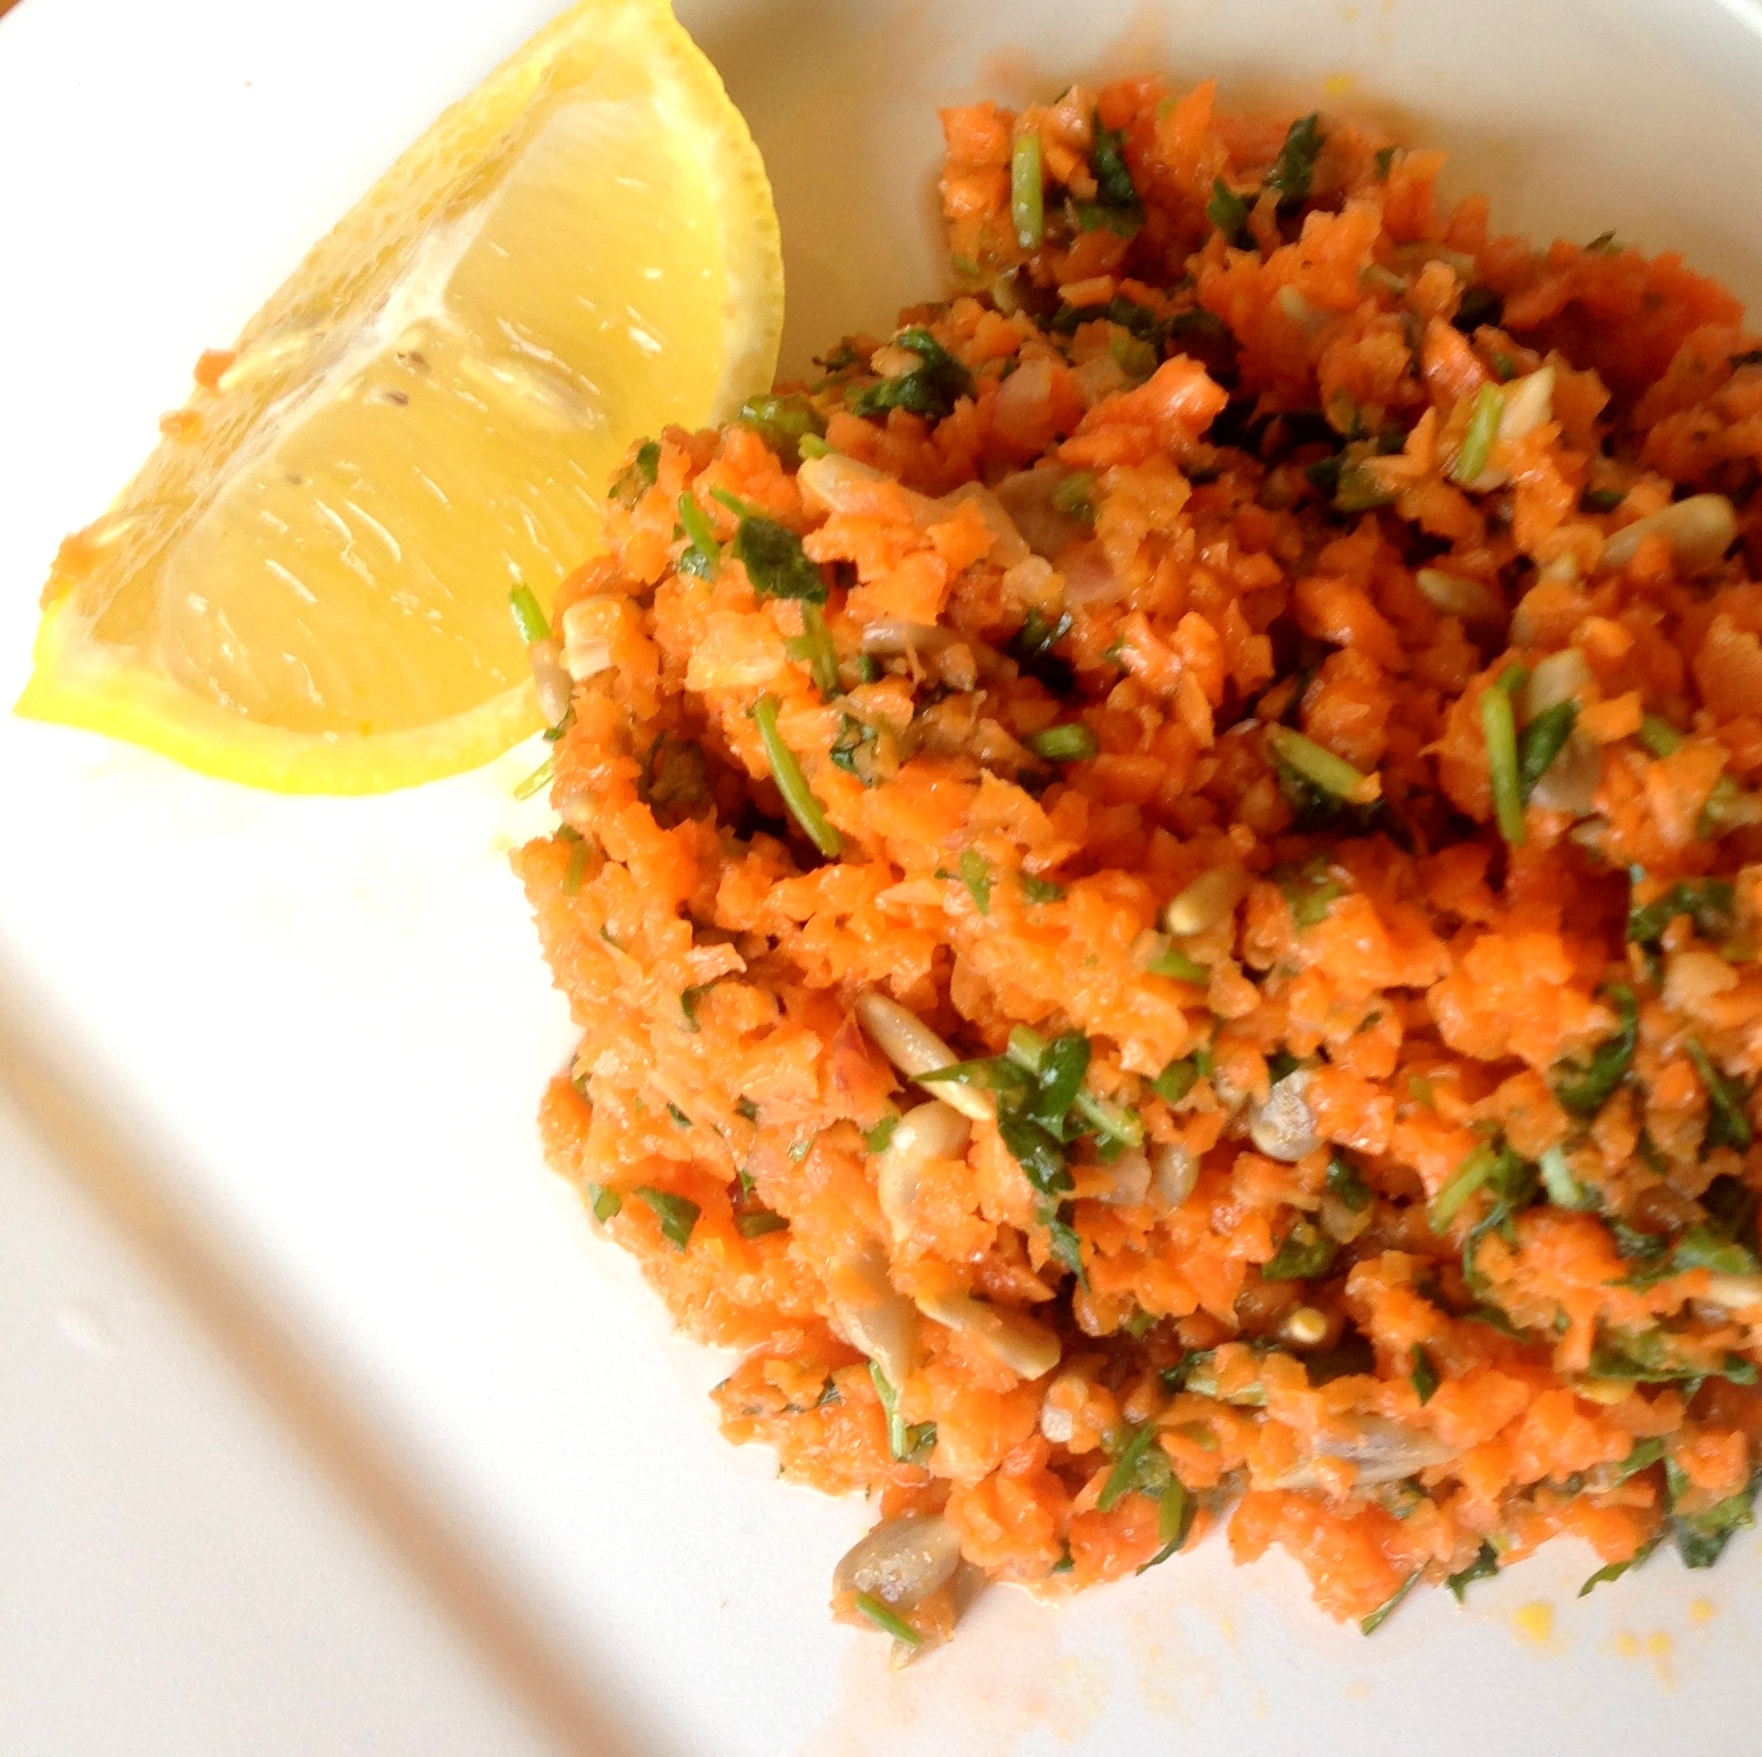 Carrot Tabbouleh Recipe - Grain-Free Mezze